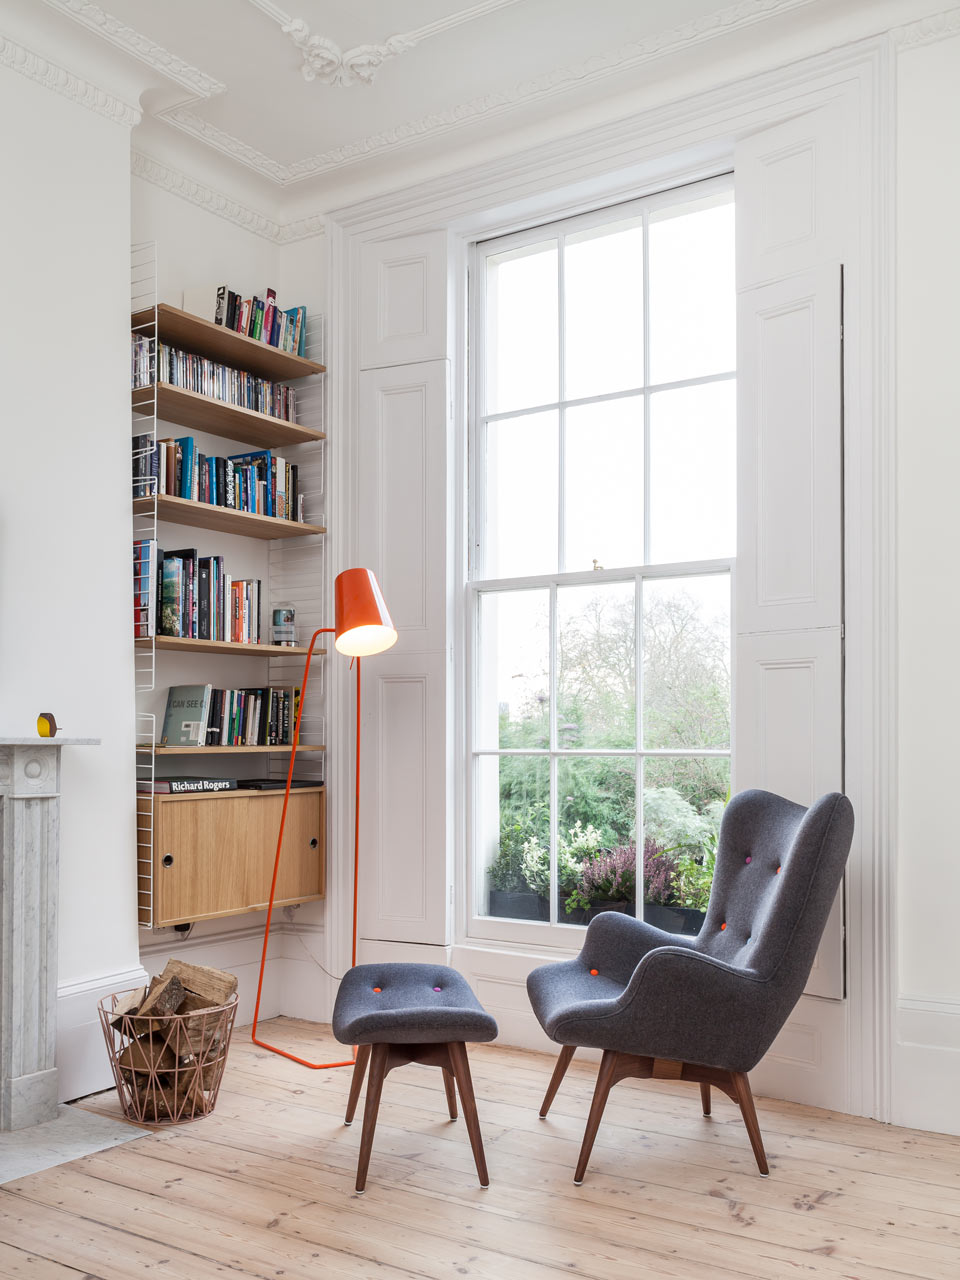 Architecture-for-London-Islington-flat-4a